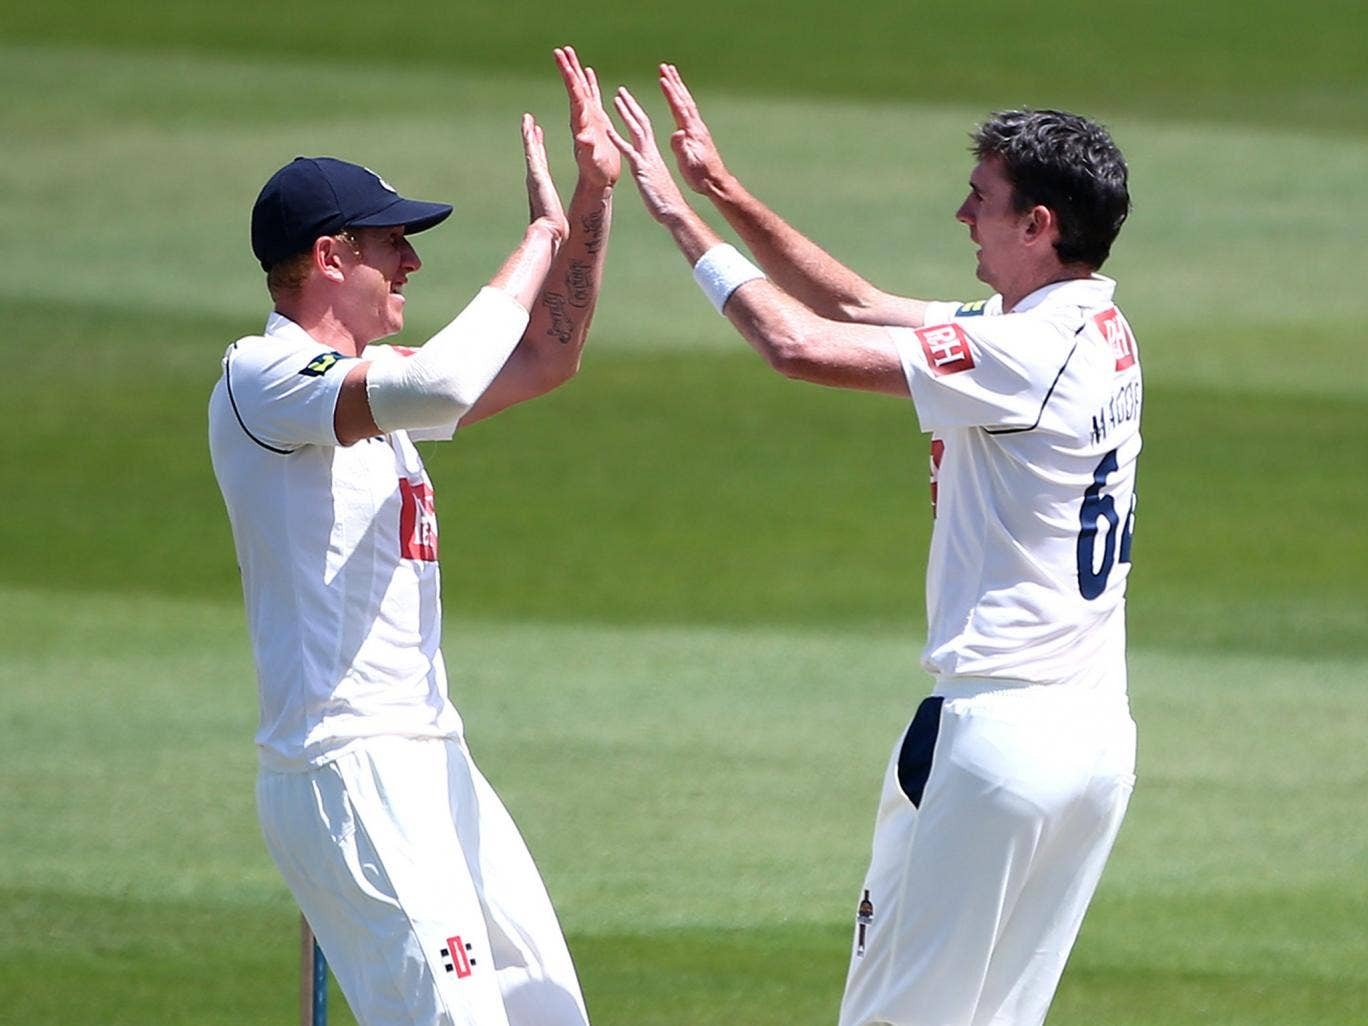 Steve Magoffin of Sussex celebrates with team mate Luke Wells